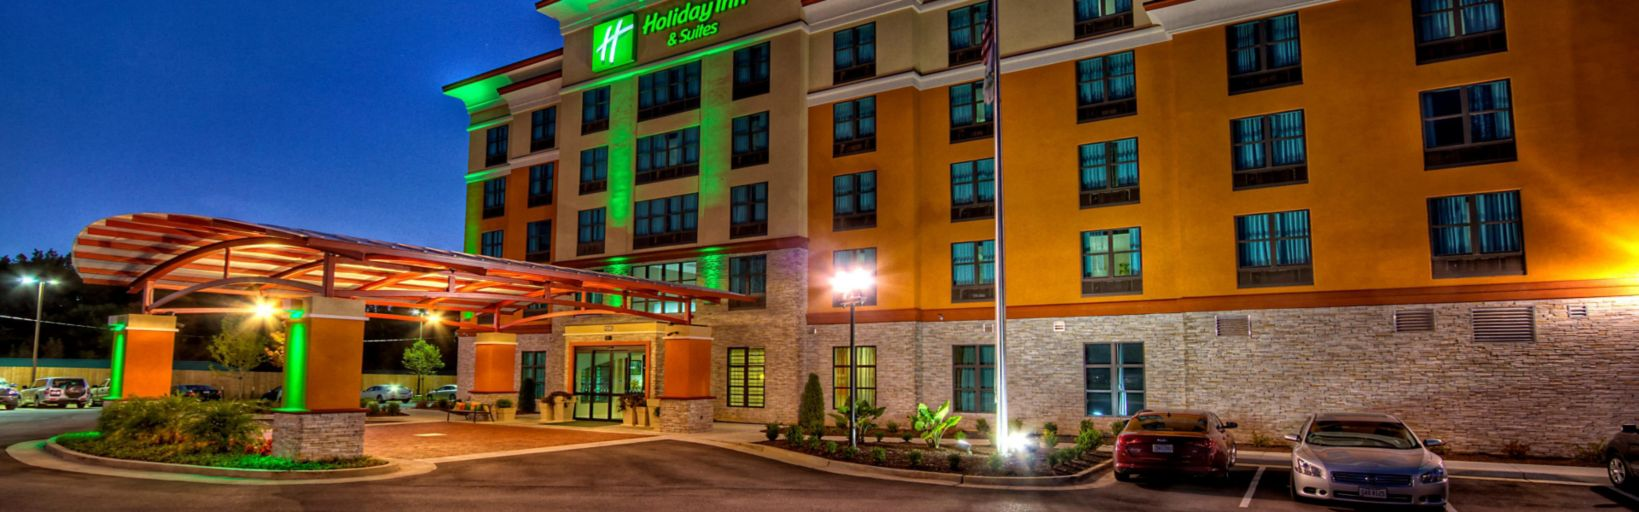 Night View Of The Holiday Inn Suites Tupelo